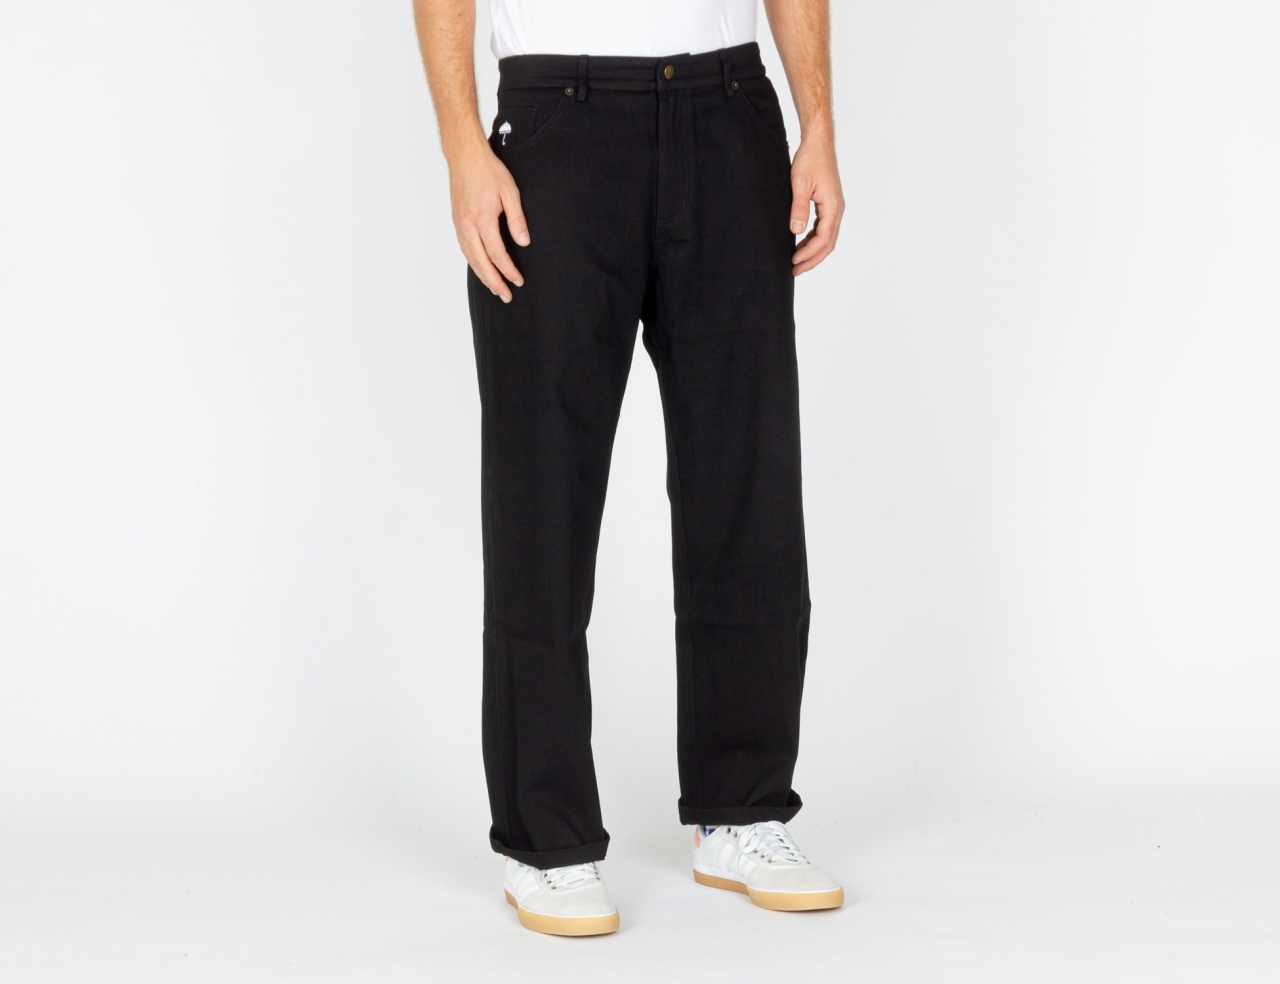 Helas Caps Poppins Denim Pant - Black